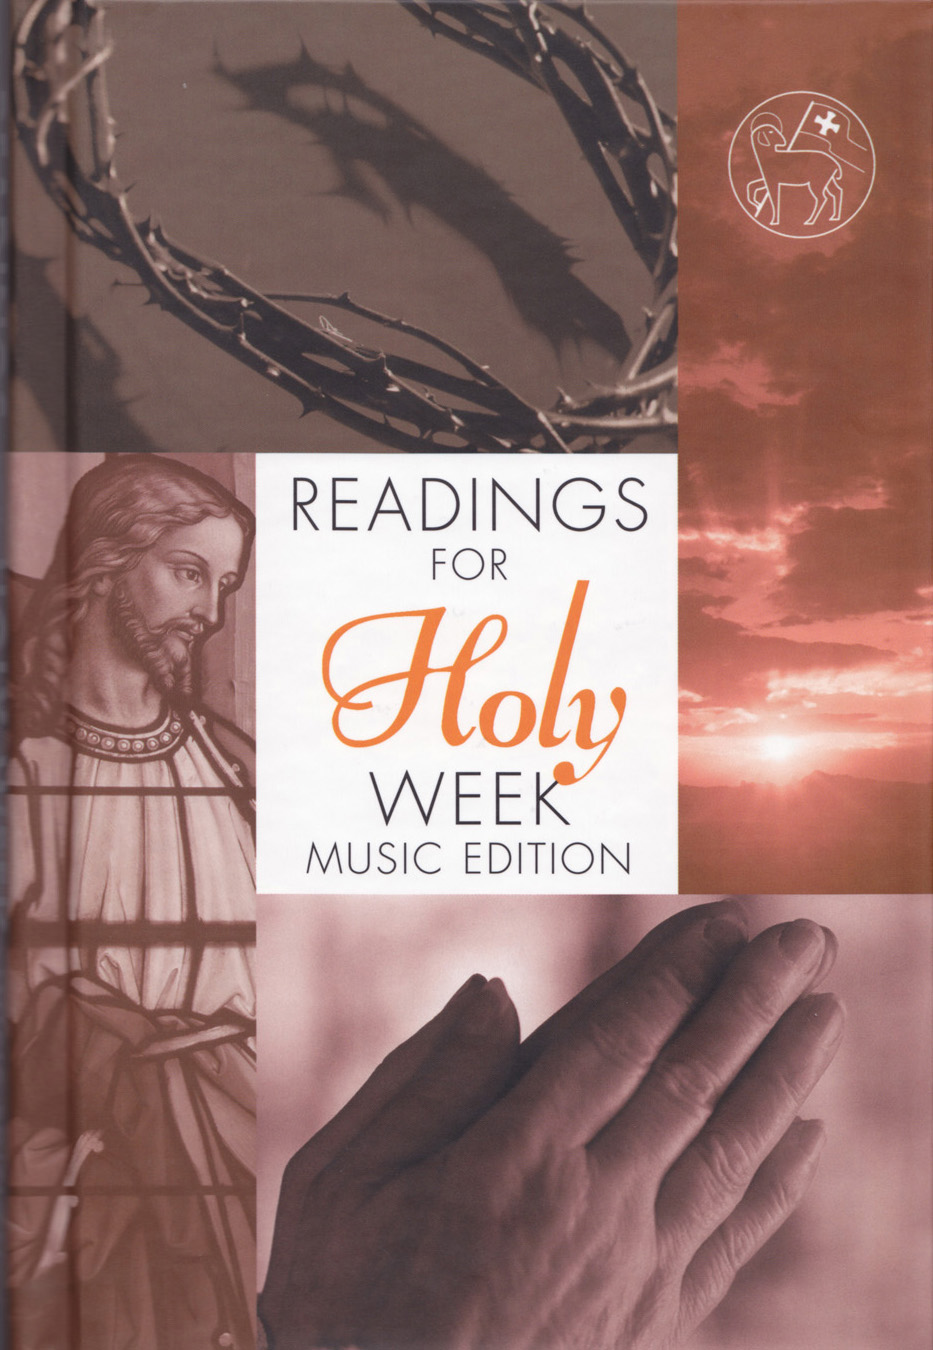 Readings for Holy Week, Music Edition